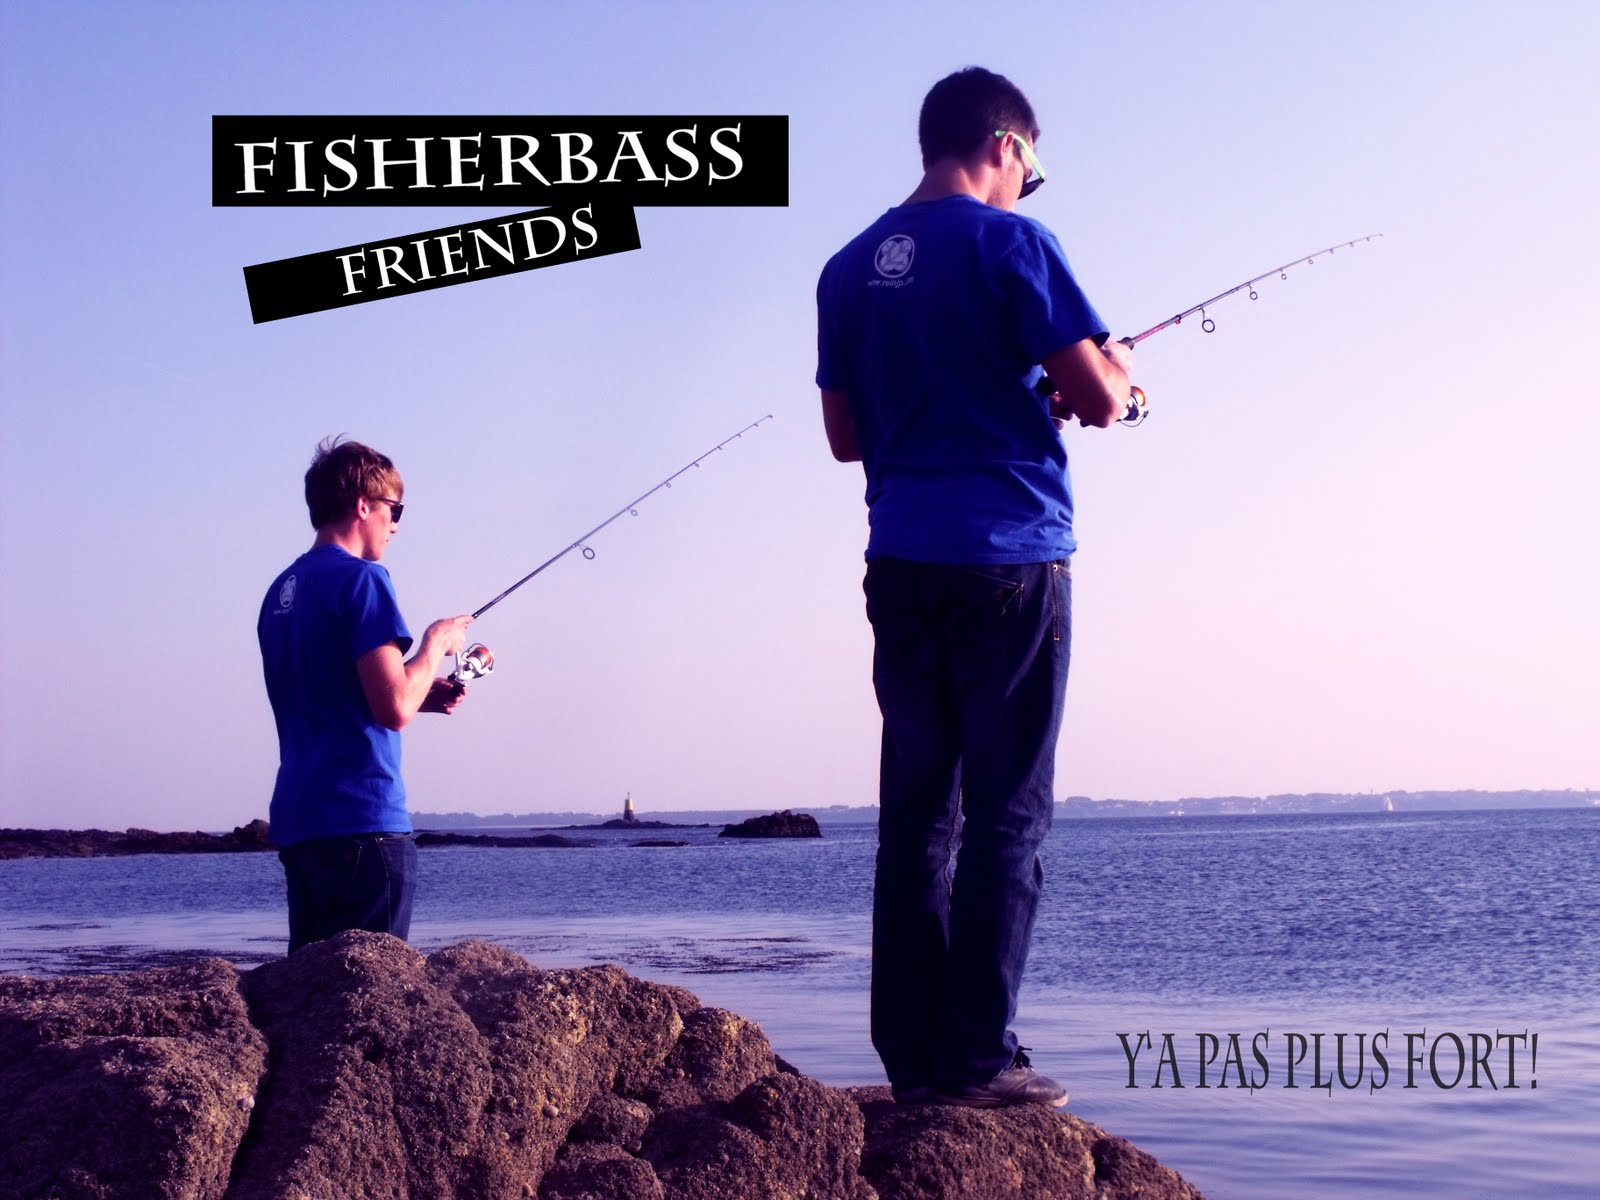 Fisherbass Friends